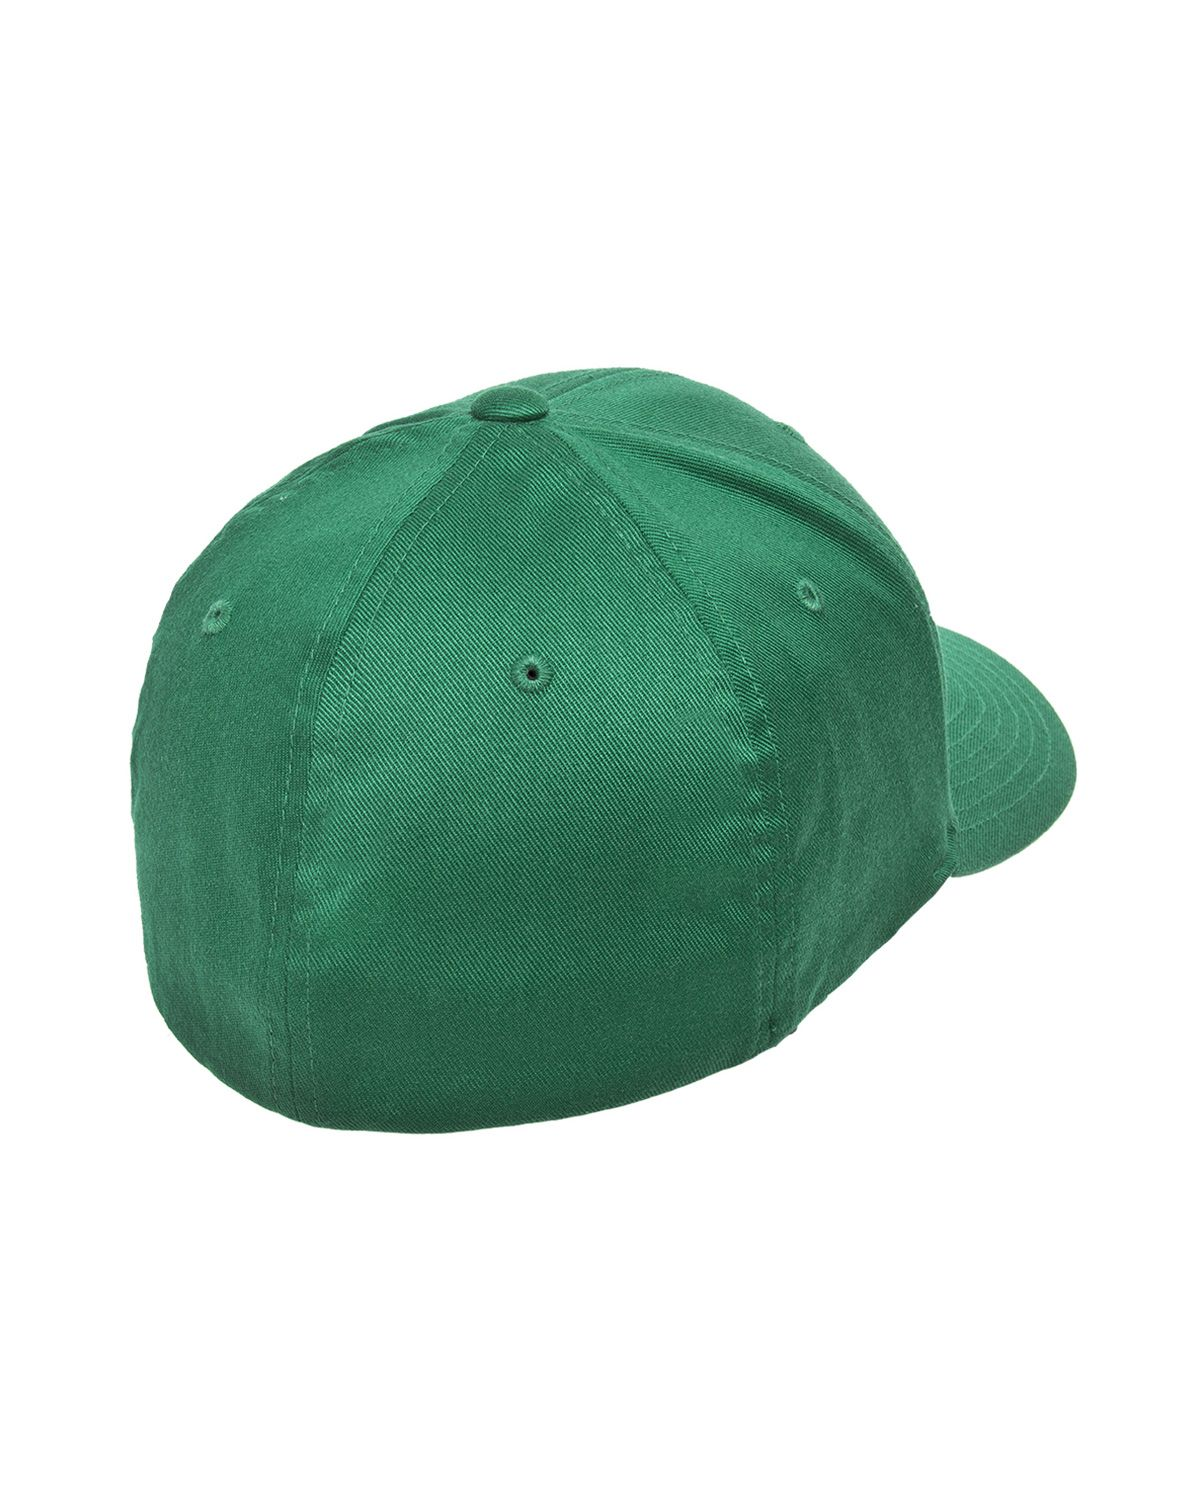 5efc4779fd3d8 Buy Flexfit 6277 Flexfit Wooly 6-Panel Cap